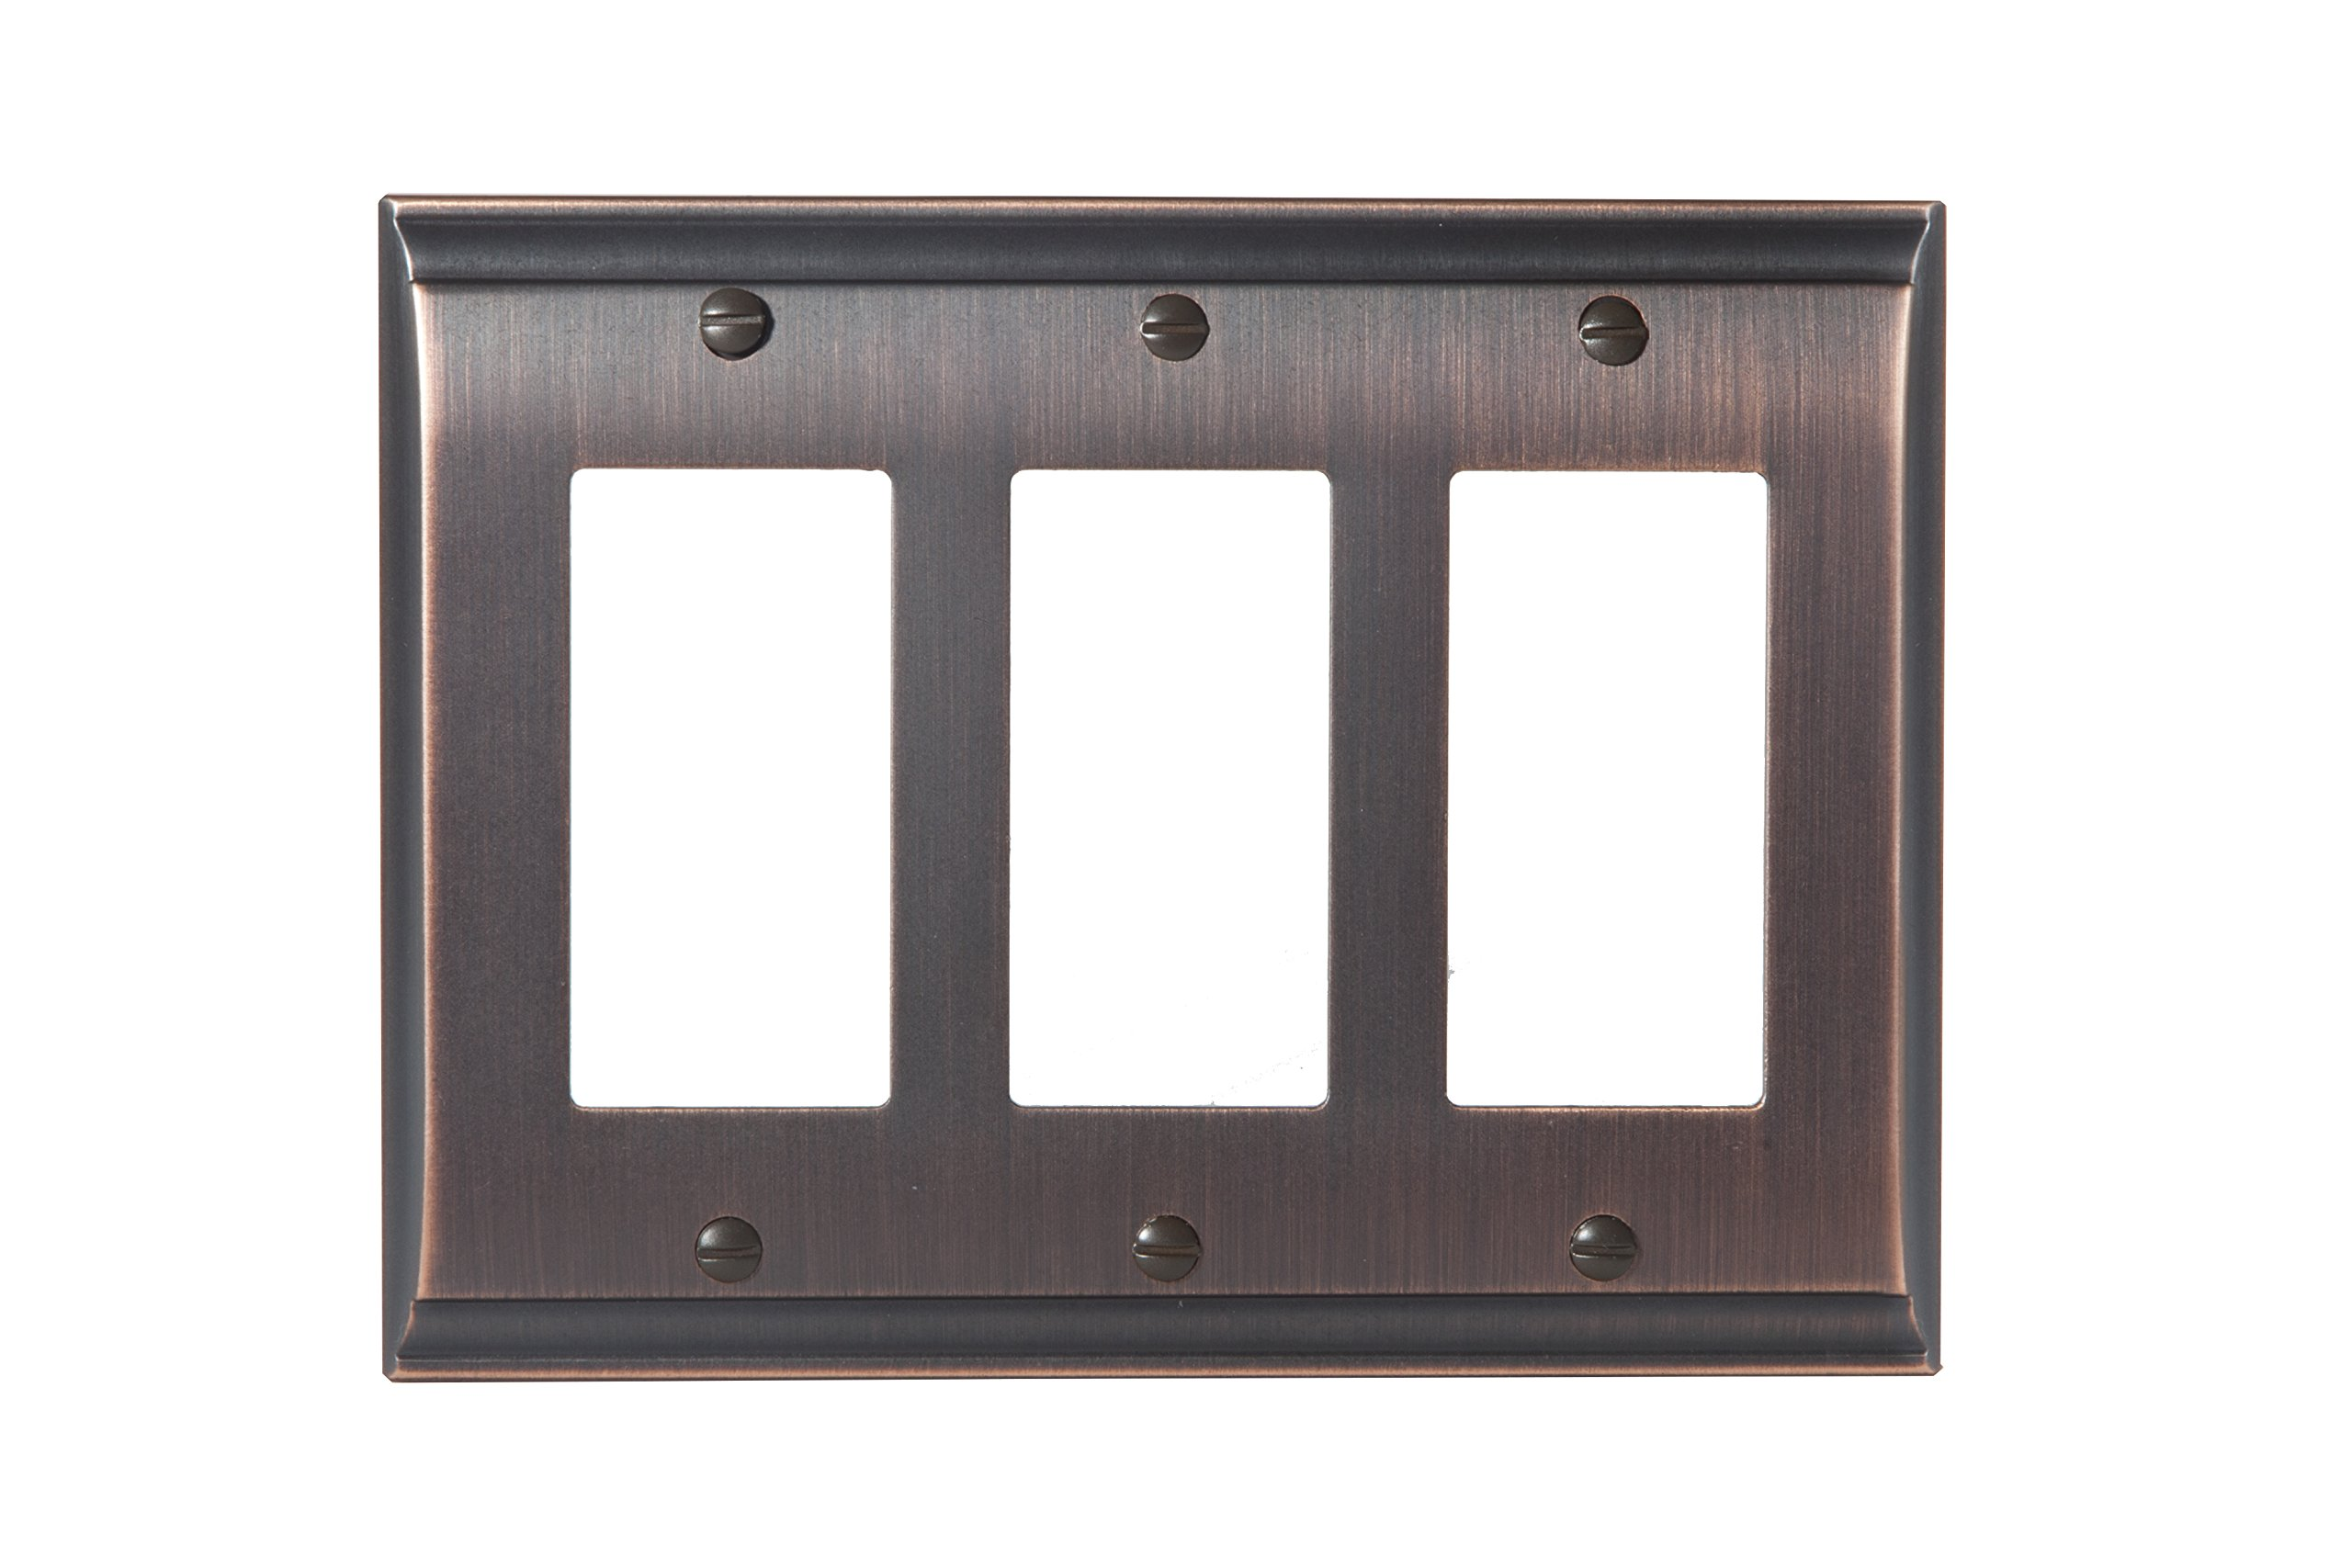 Amerock BP36506ORB Candler 3 Rocker Wall Plate - Oil-Rubbed Bronze by Amerock